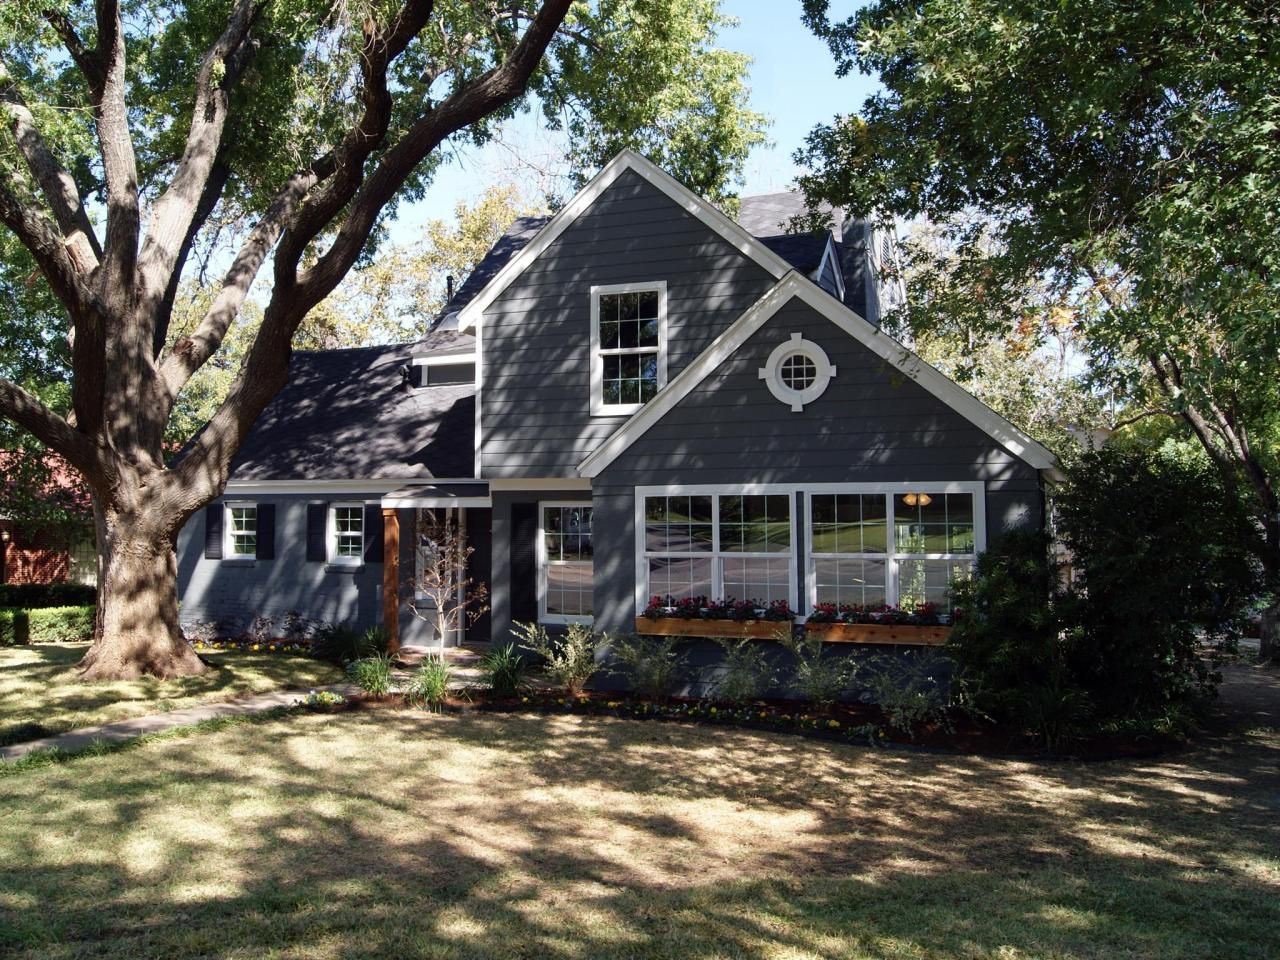 Photos hgtv 39 s fixer upper with chip and joanna gaines - Hgtv exterior paint color schemes ...